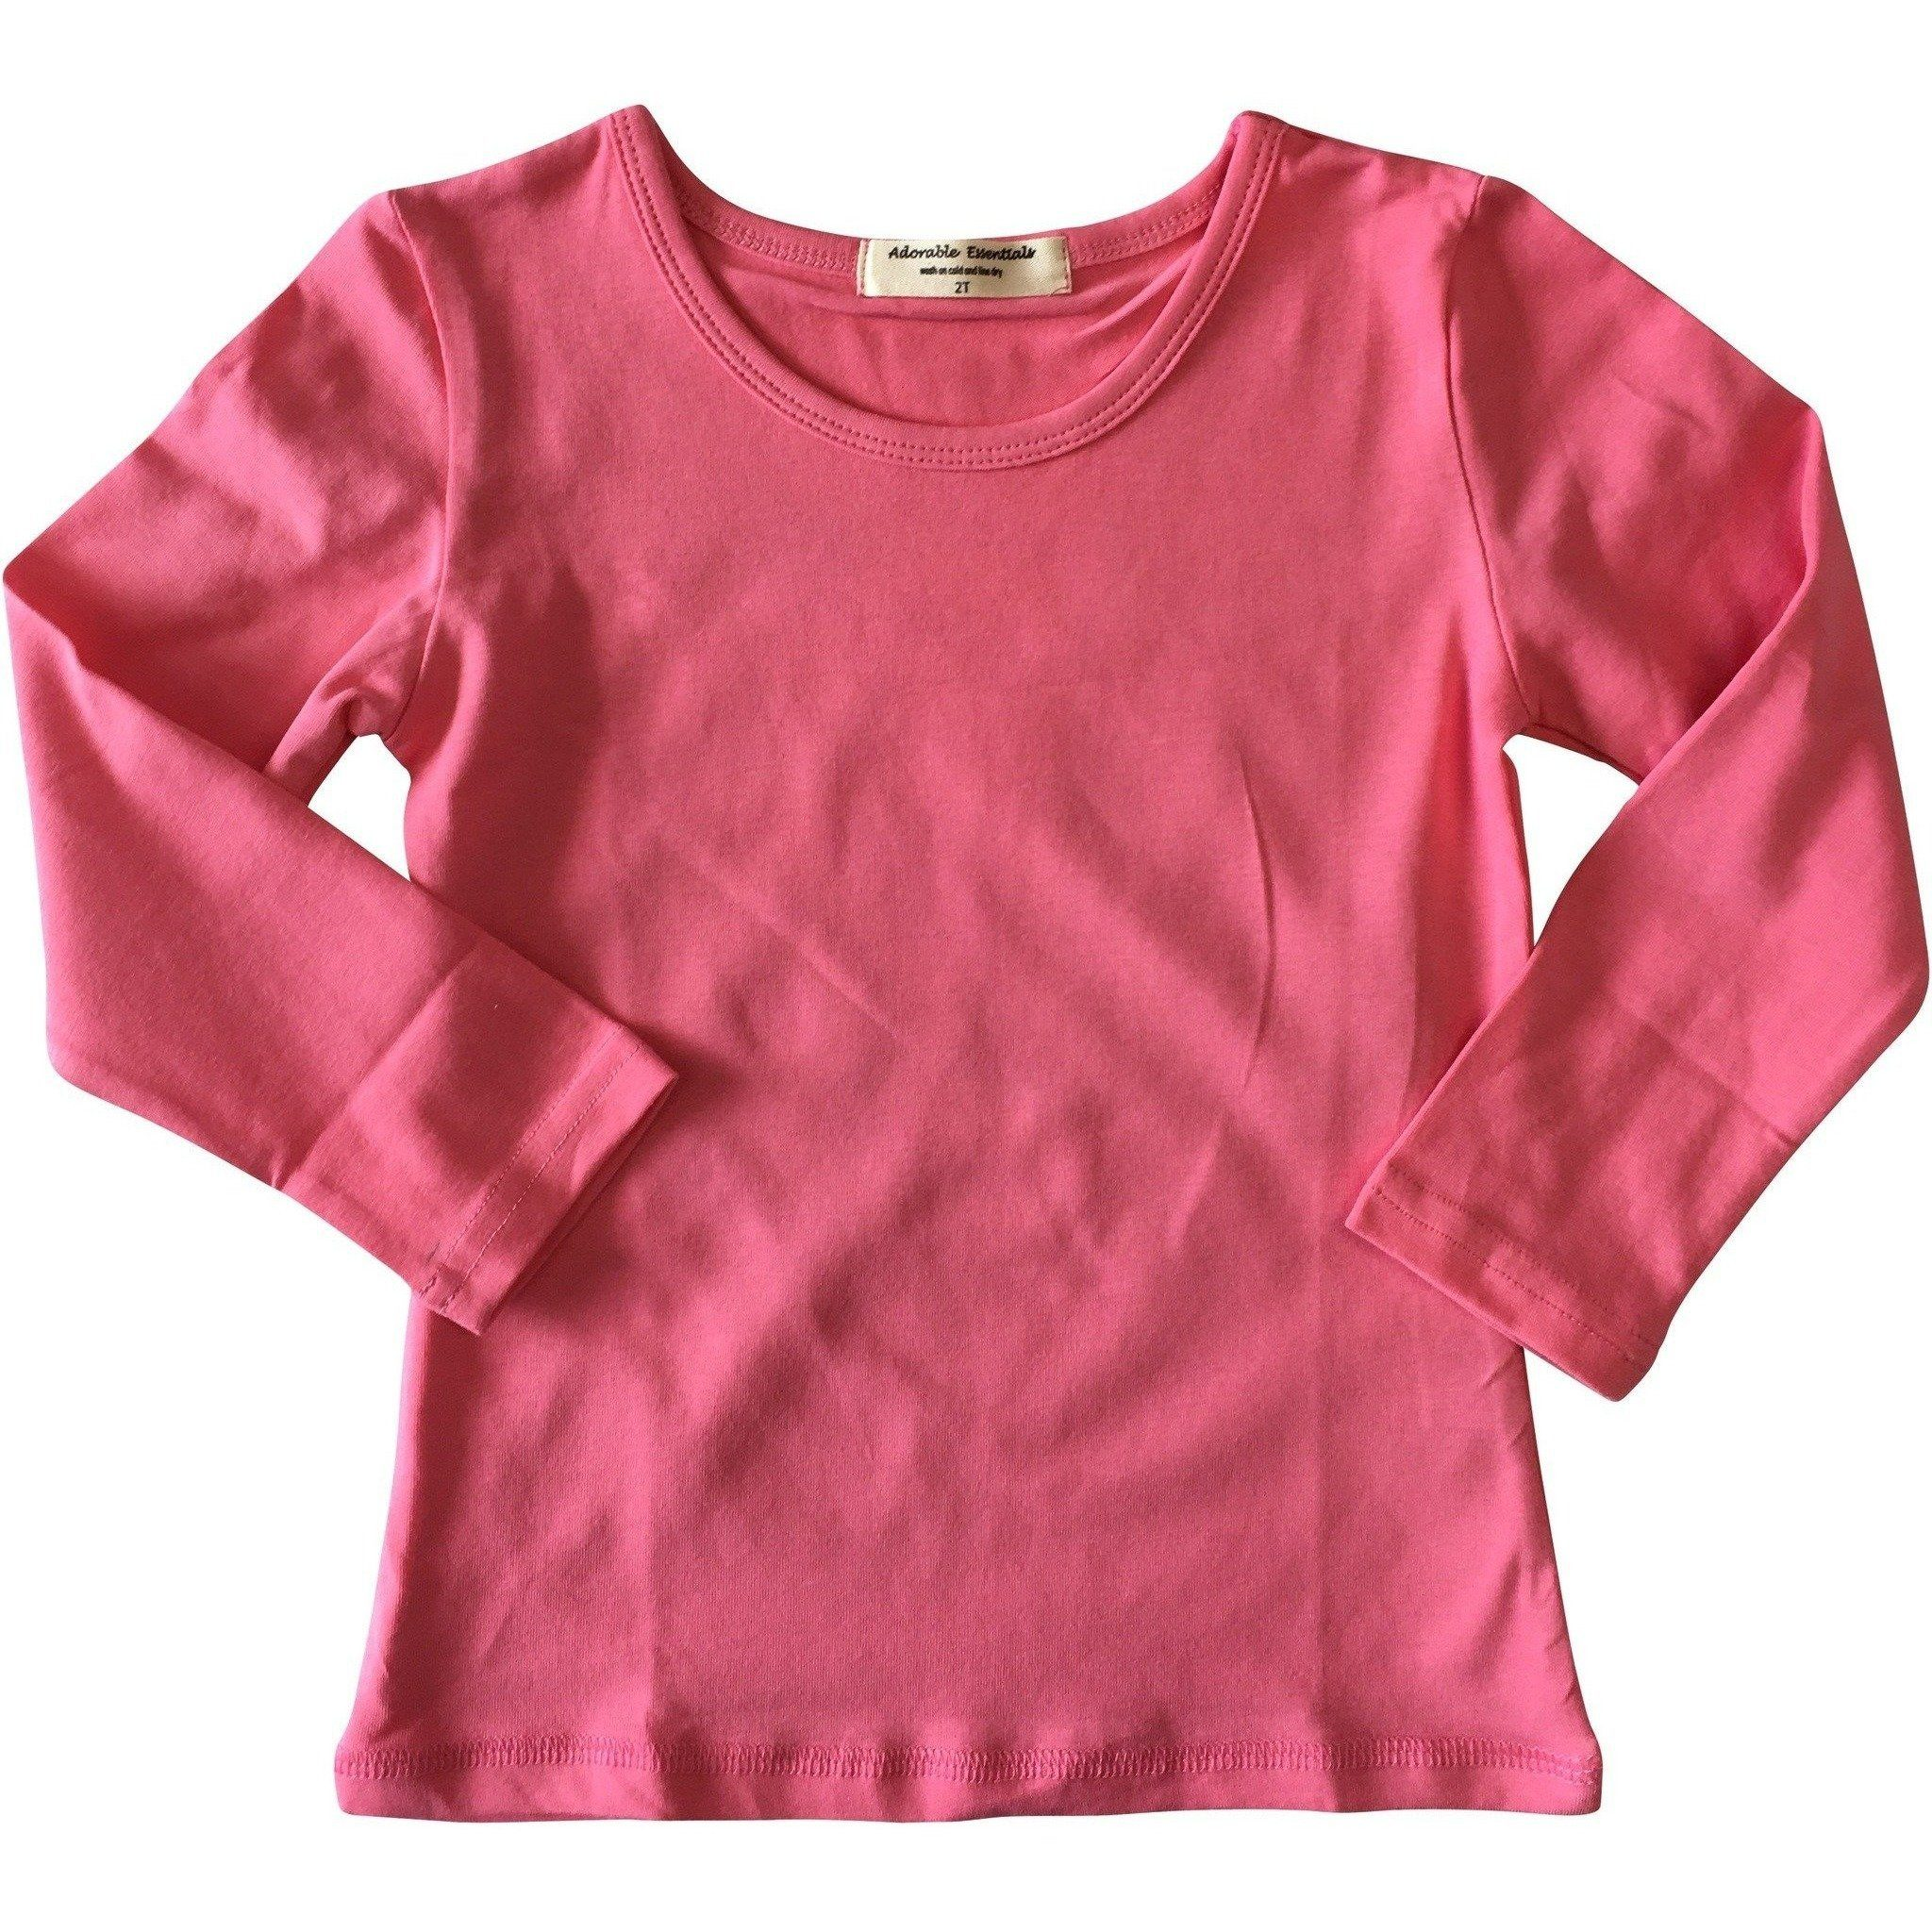 Adorable Essentials, Simple Shirts,Tops,Adorable Essentials, LLC